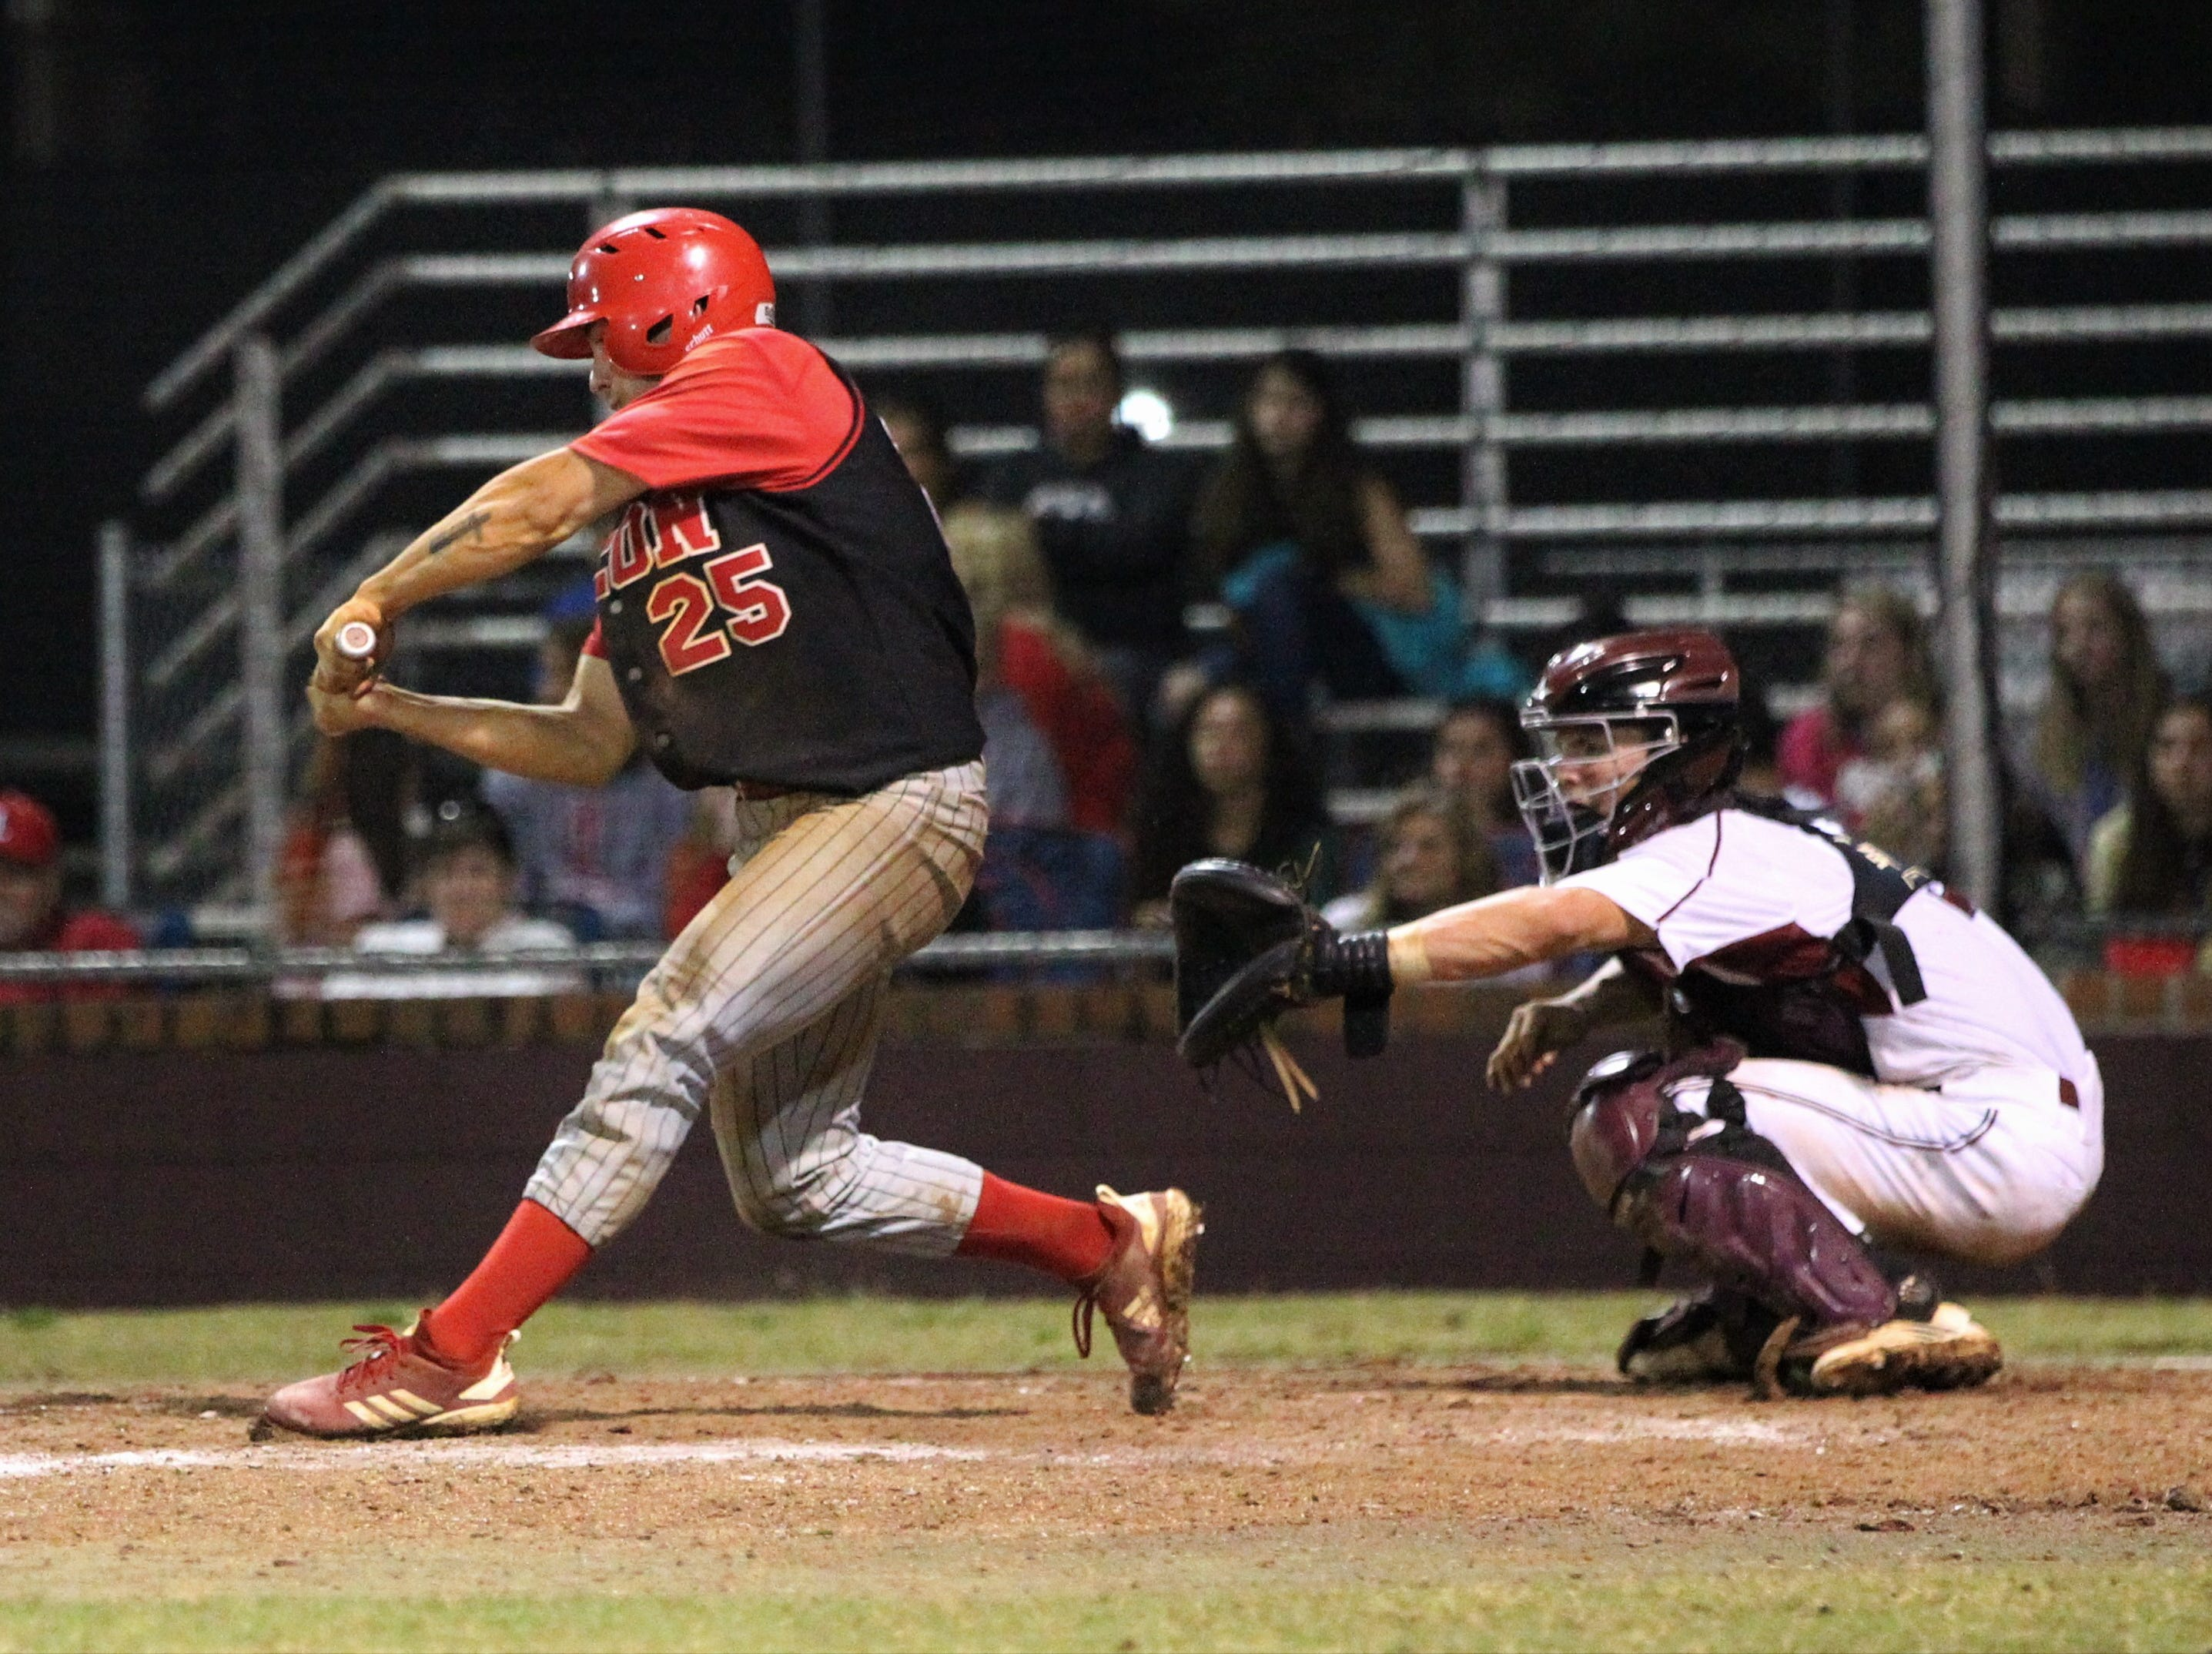 Leon senior Tyler Borges bats as Chiles won an 11-6 home game against Leon on Friday, April 5, 2019, to force a season split. The Lions won 3-0 earlier in the week.